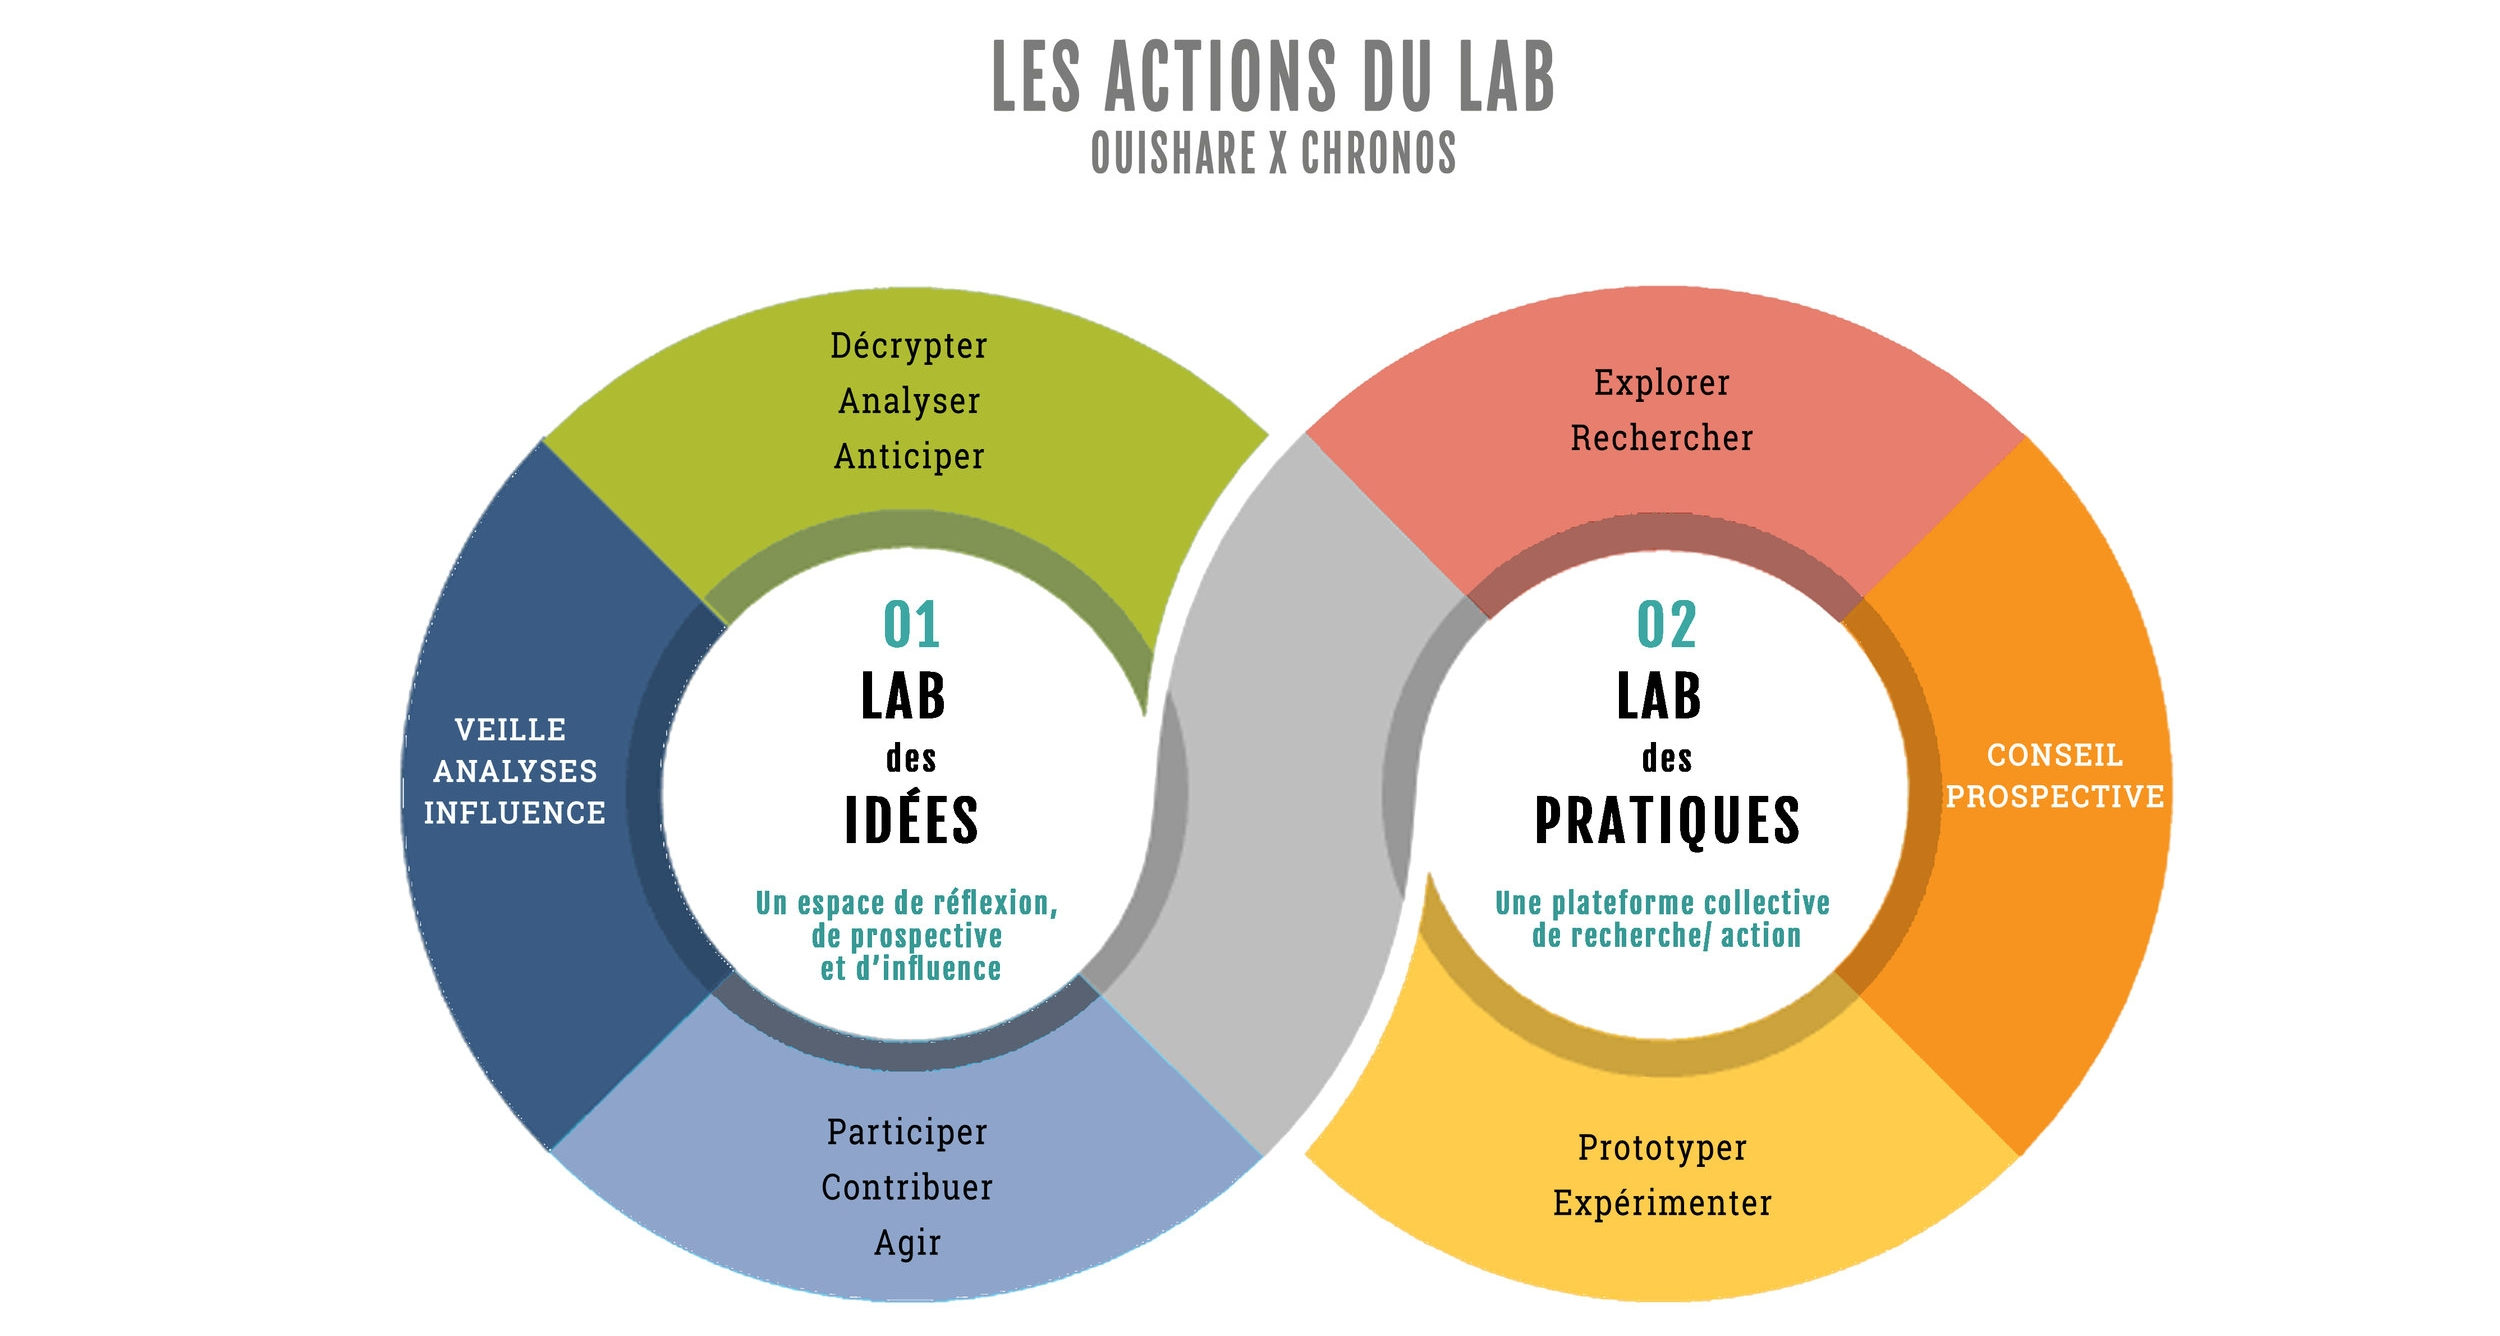 2-Les actions du Lab.jpg